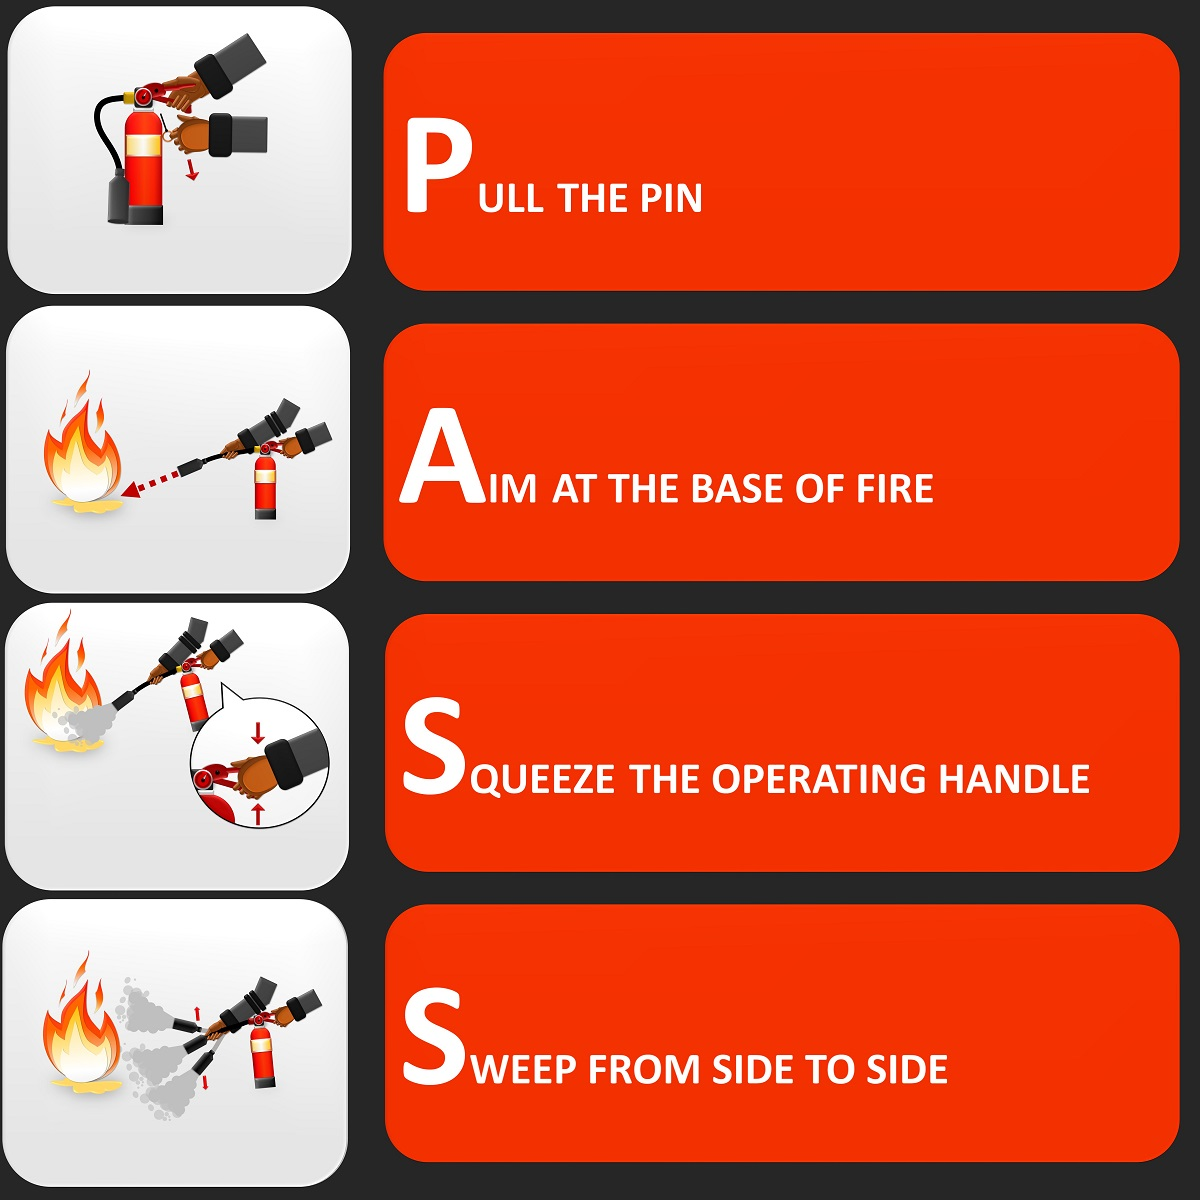 fire extinguisher instructions saying PASS or Pull Aim Squeeze Sweep